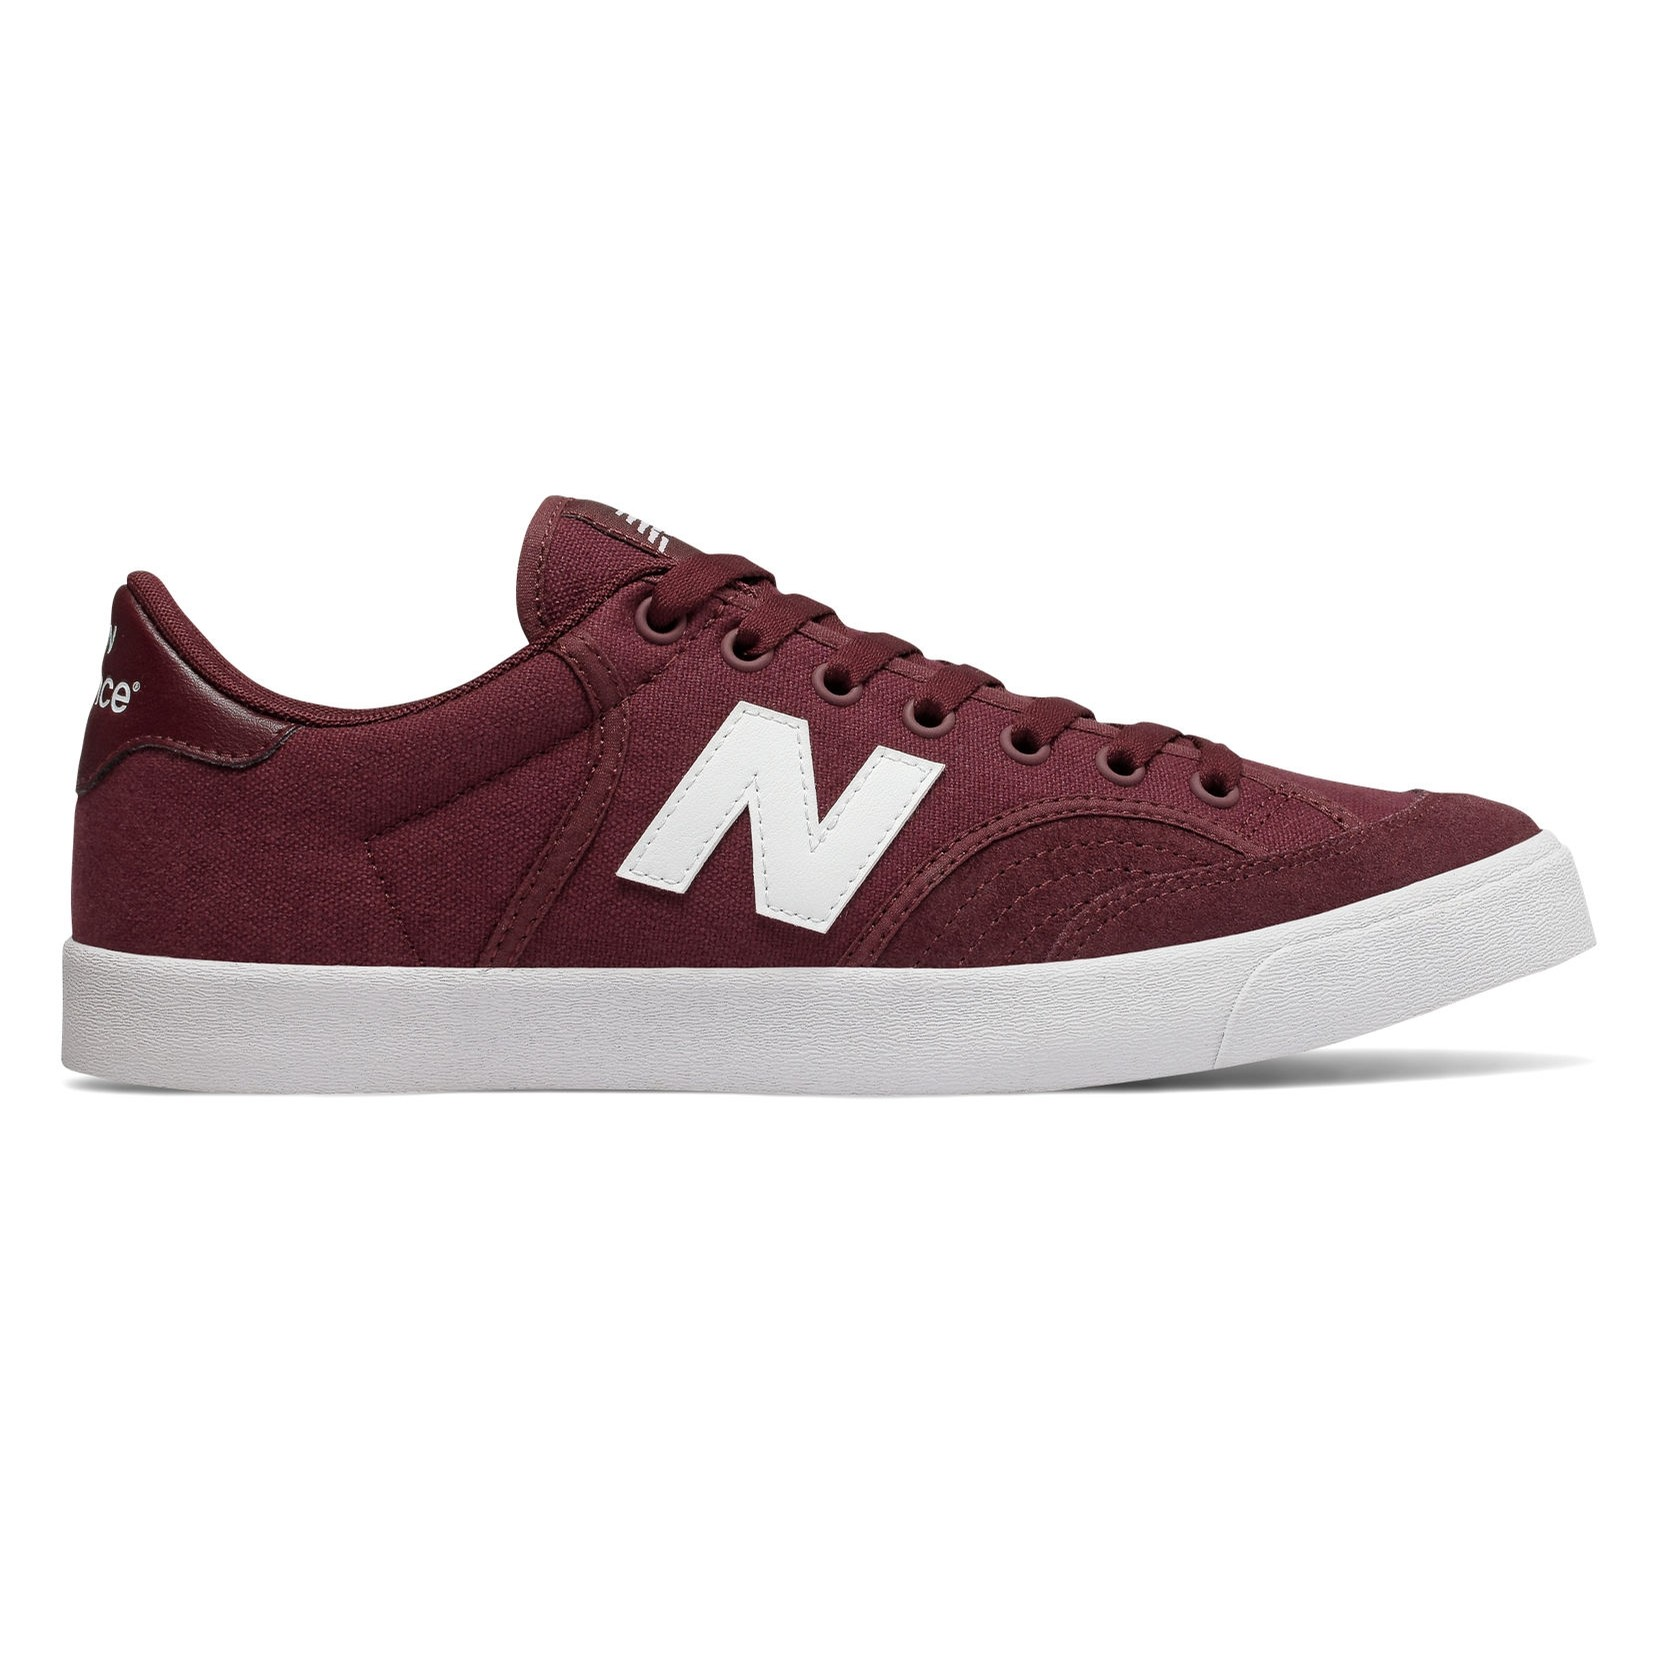 NB 212 Shoe (Maroon)